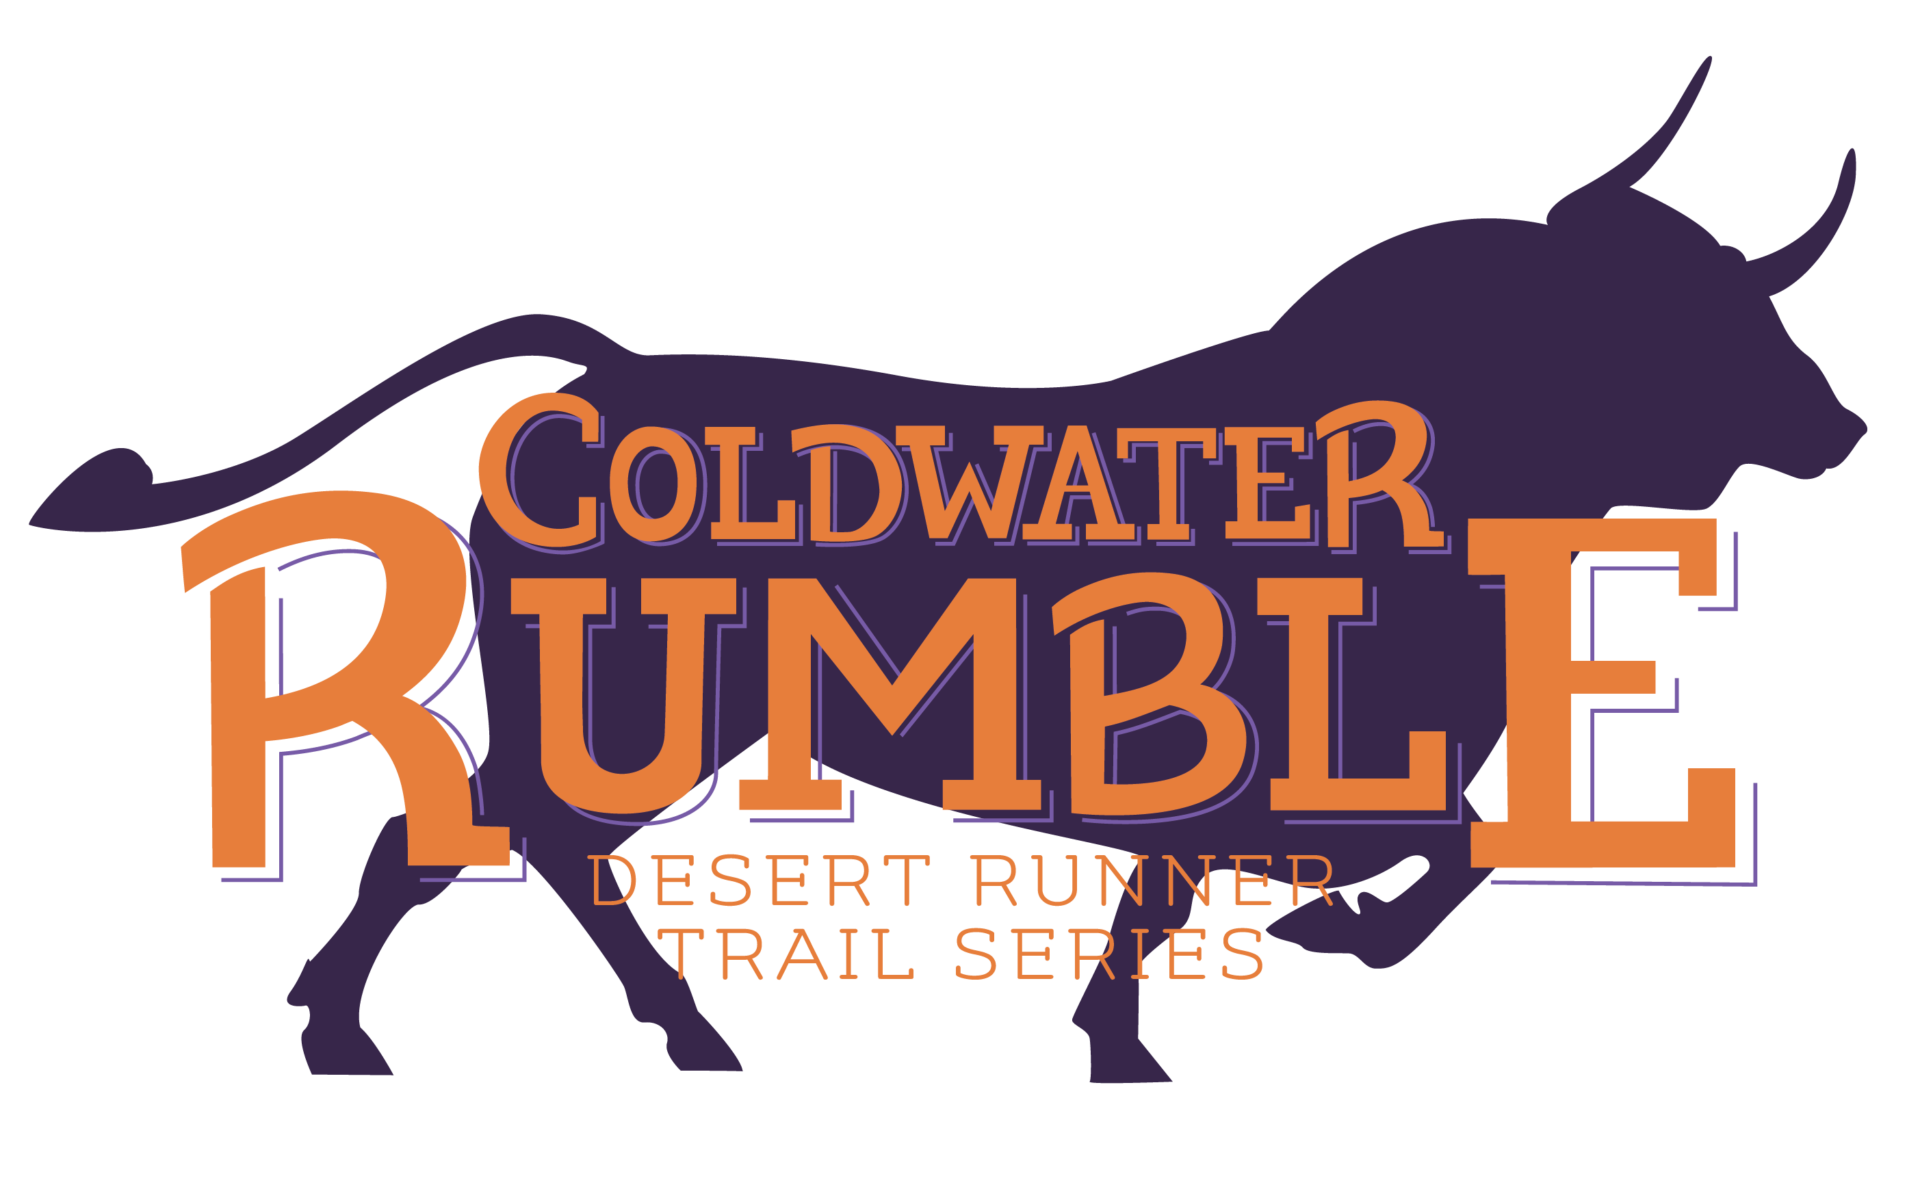 Desert clipart thirsty. Sonoran mile race run